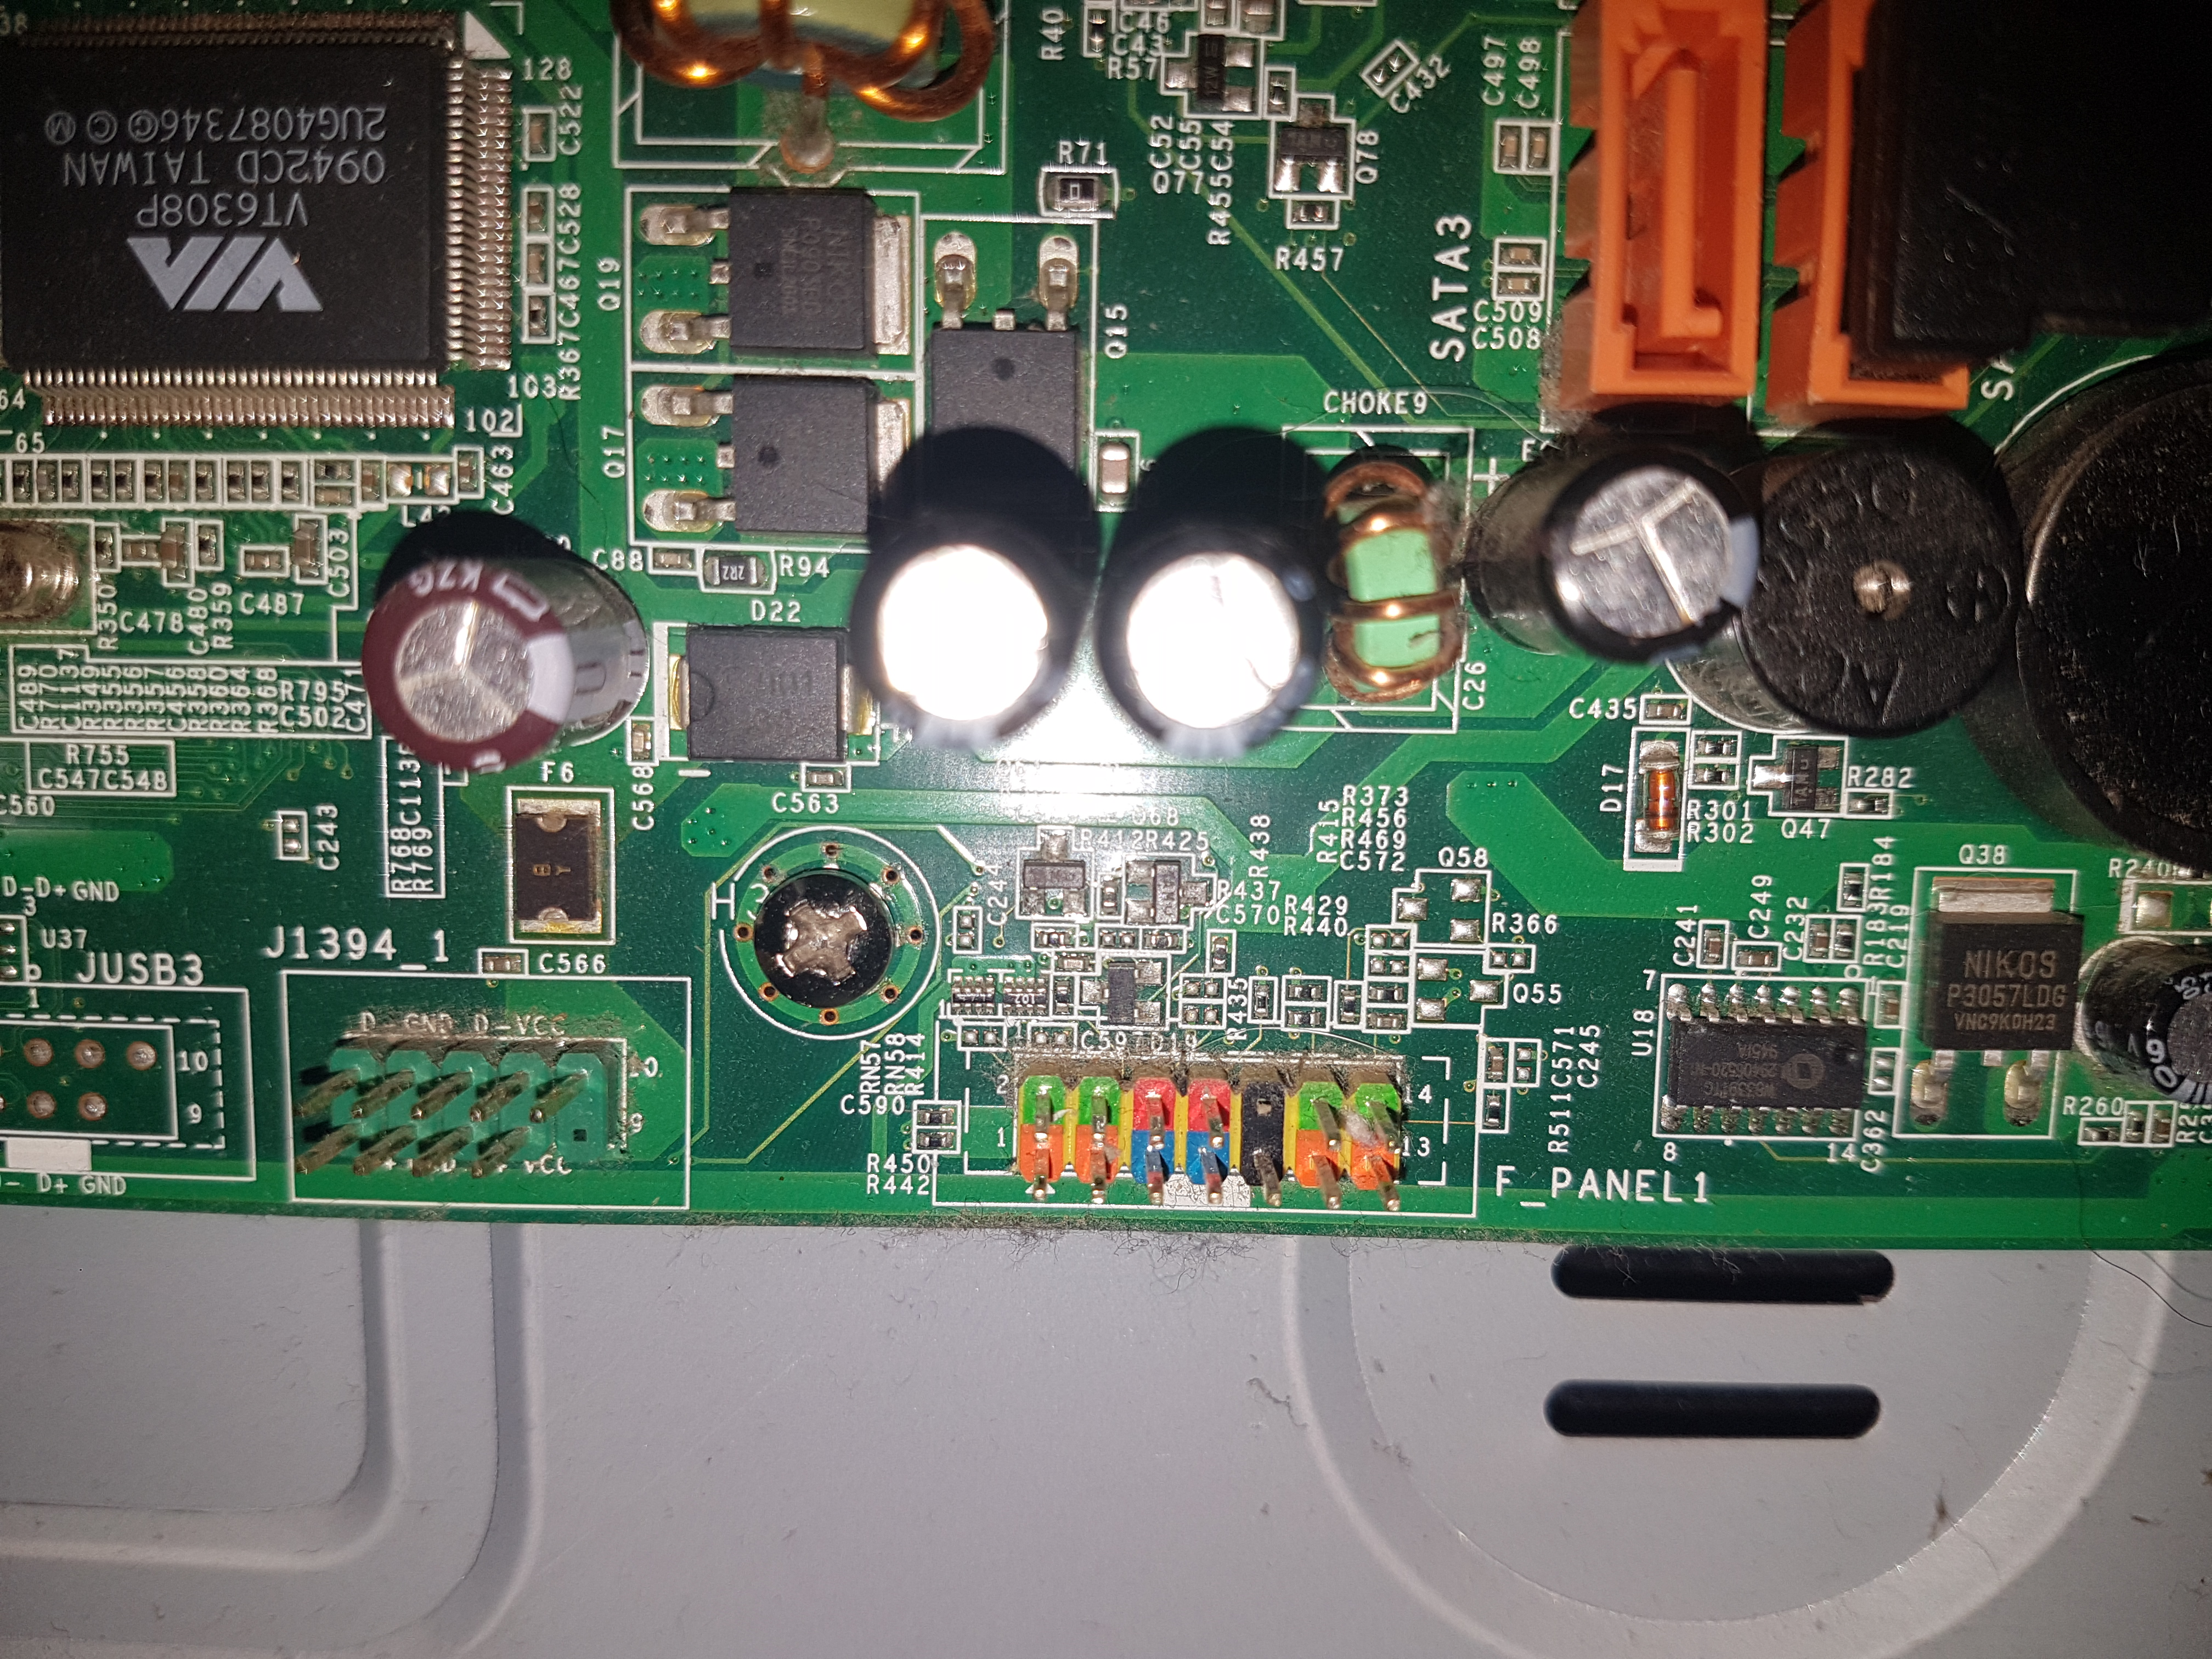 Acer Aspire M1800 MOBO Front Panel Pins - CPUs, Motherboards, and